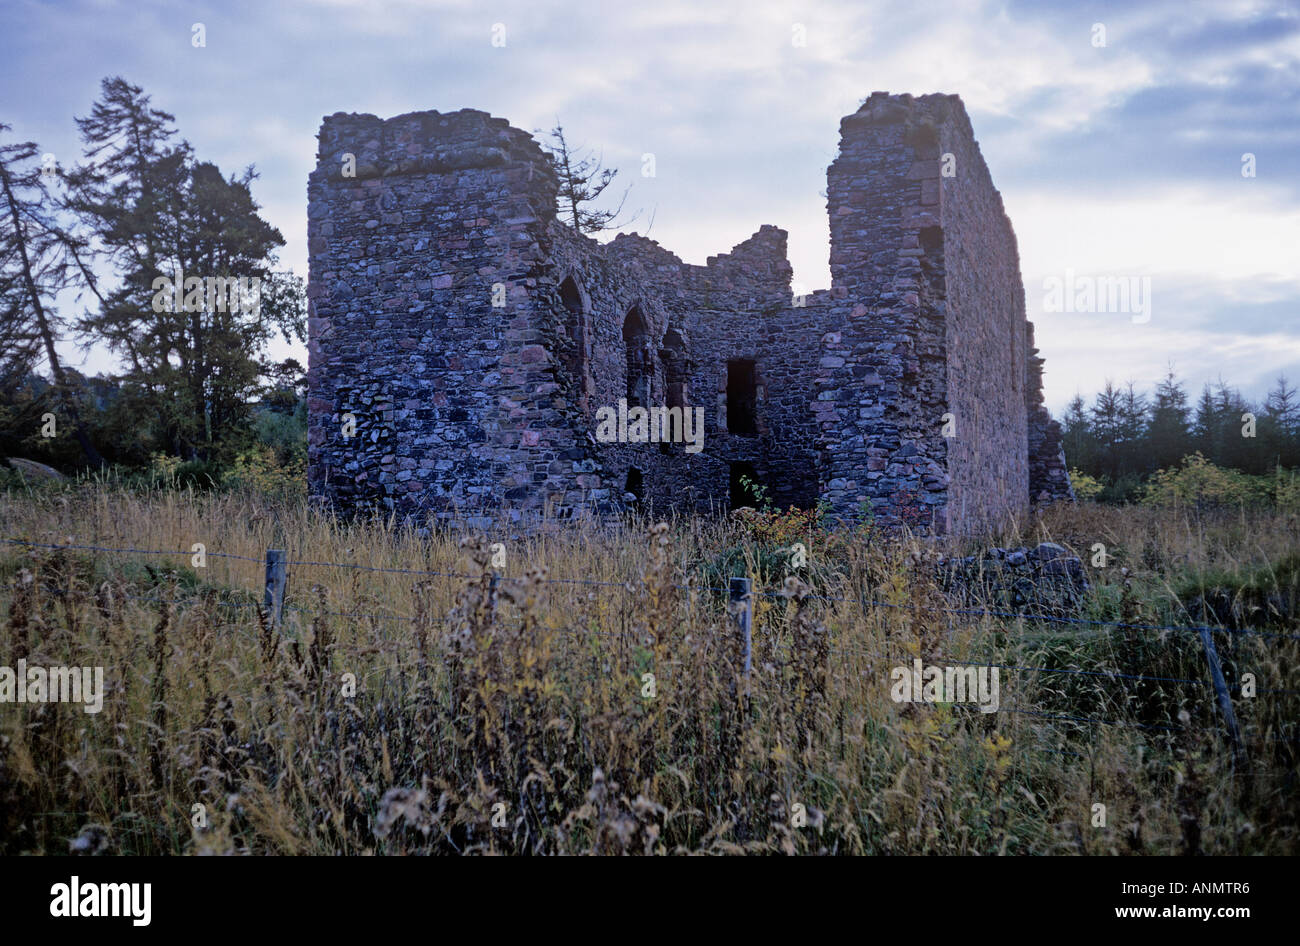 Rait Castle 3 miles south of Nairn East of Inverness Haunted by the ghost of a girl in a bloodstained dress - Stock Image